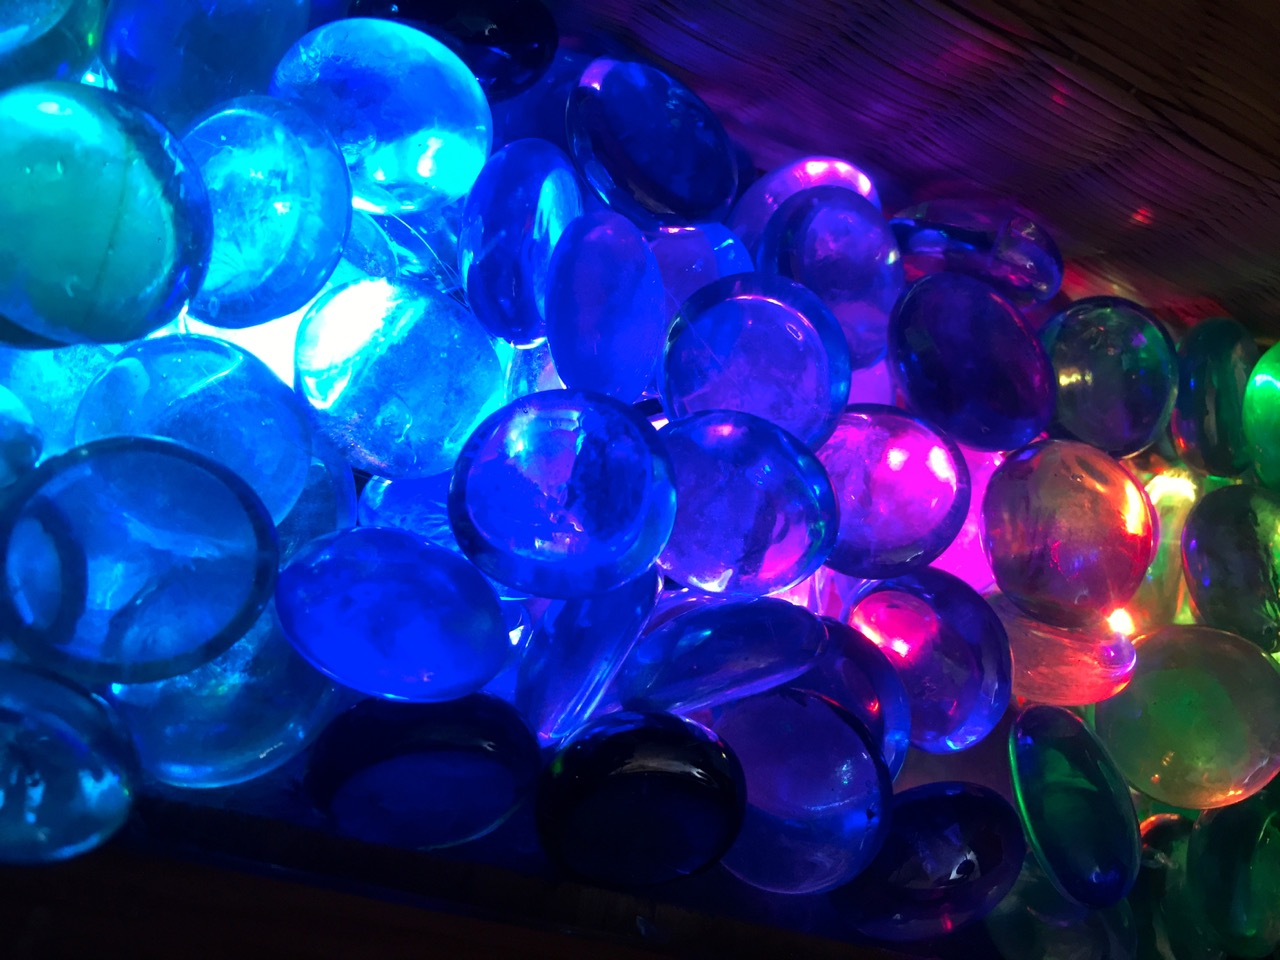 led_strips_00_glass_pebbles_lit.jpg